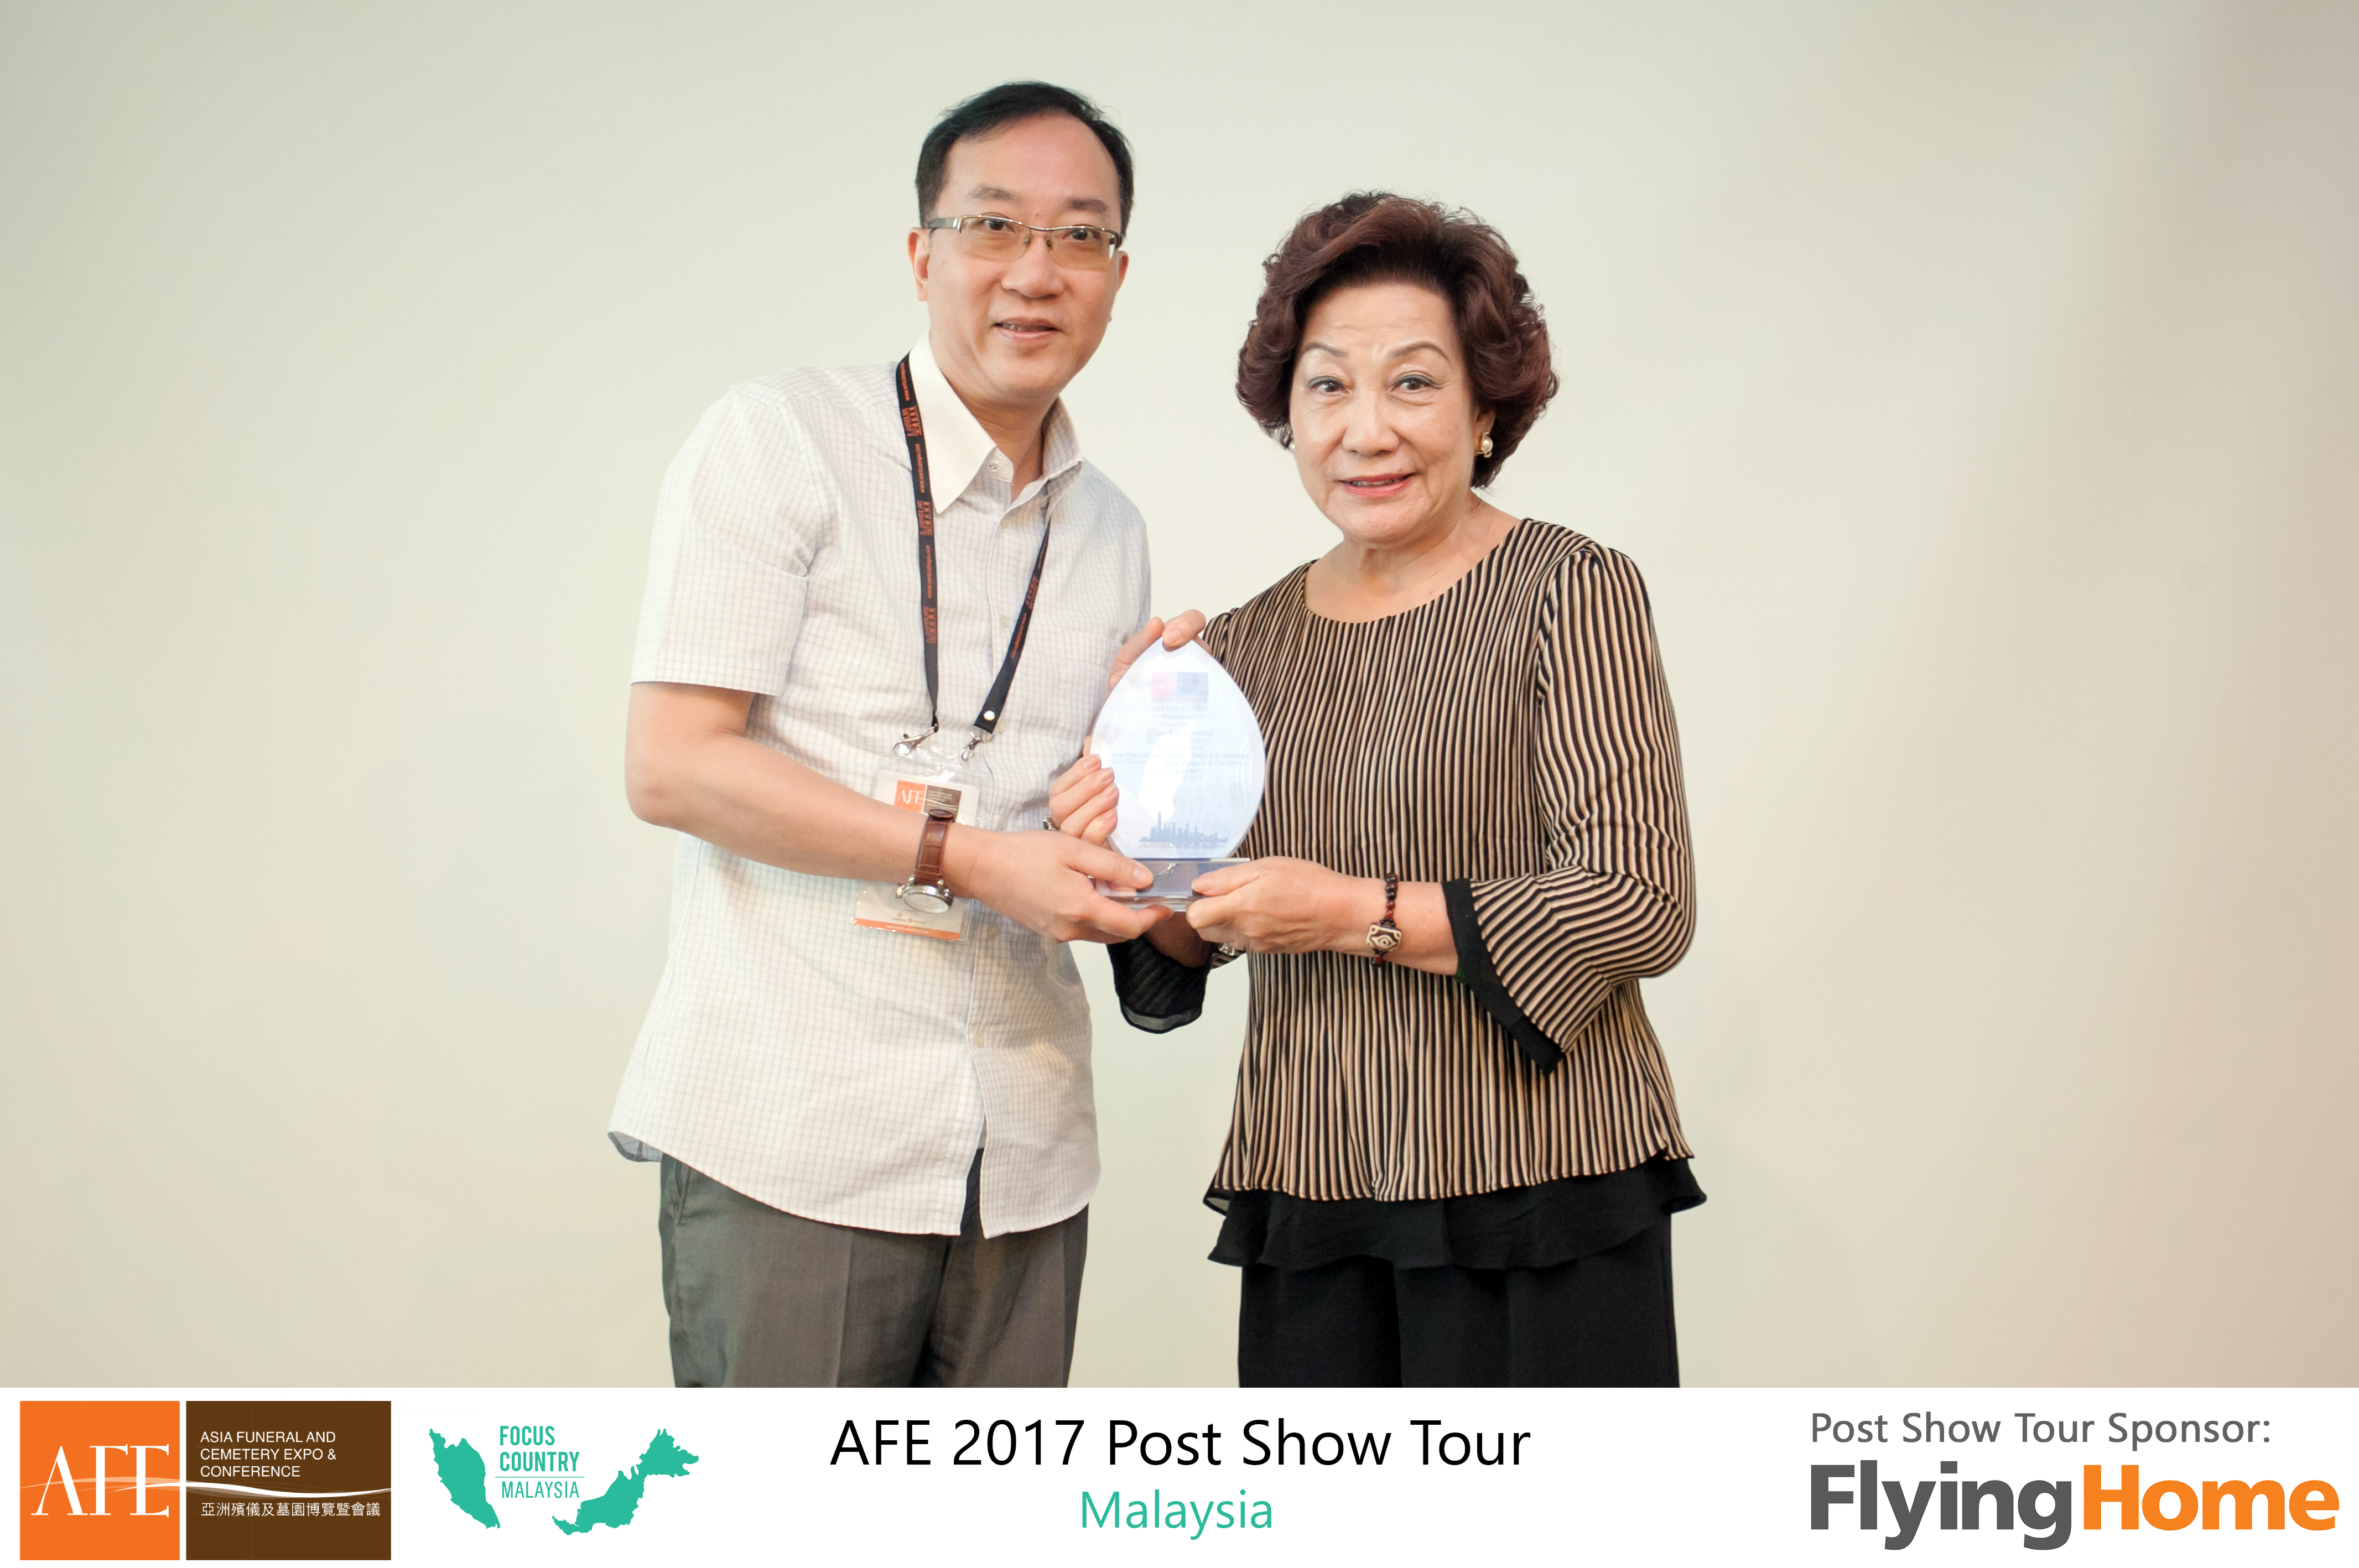 AFE Post Show Tour 2017 Day 3 -26